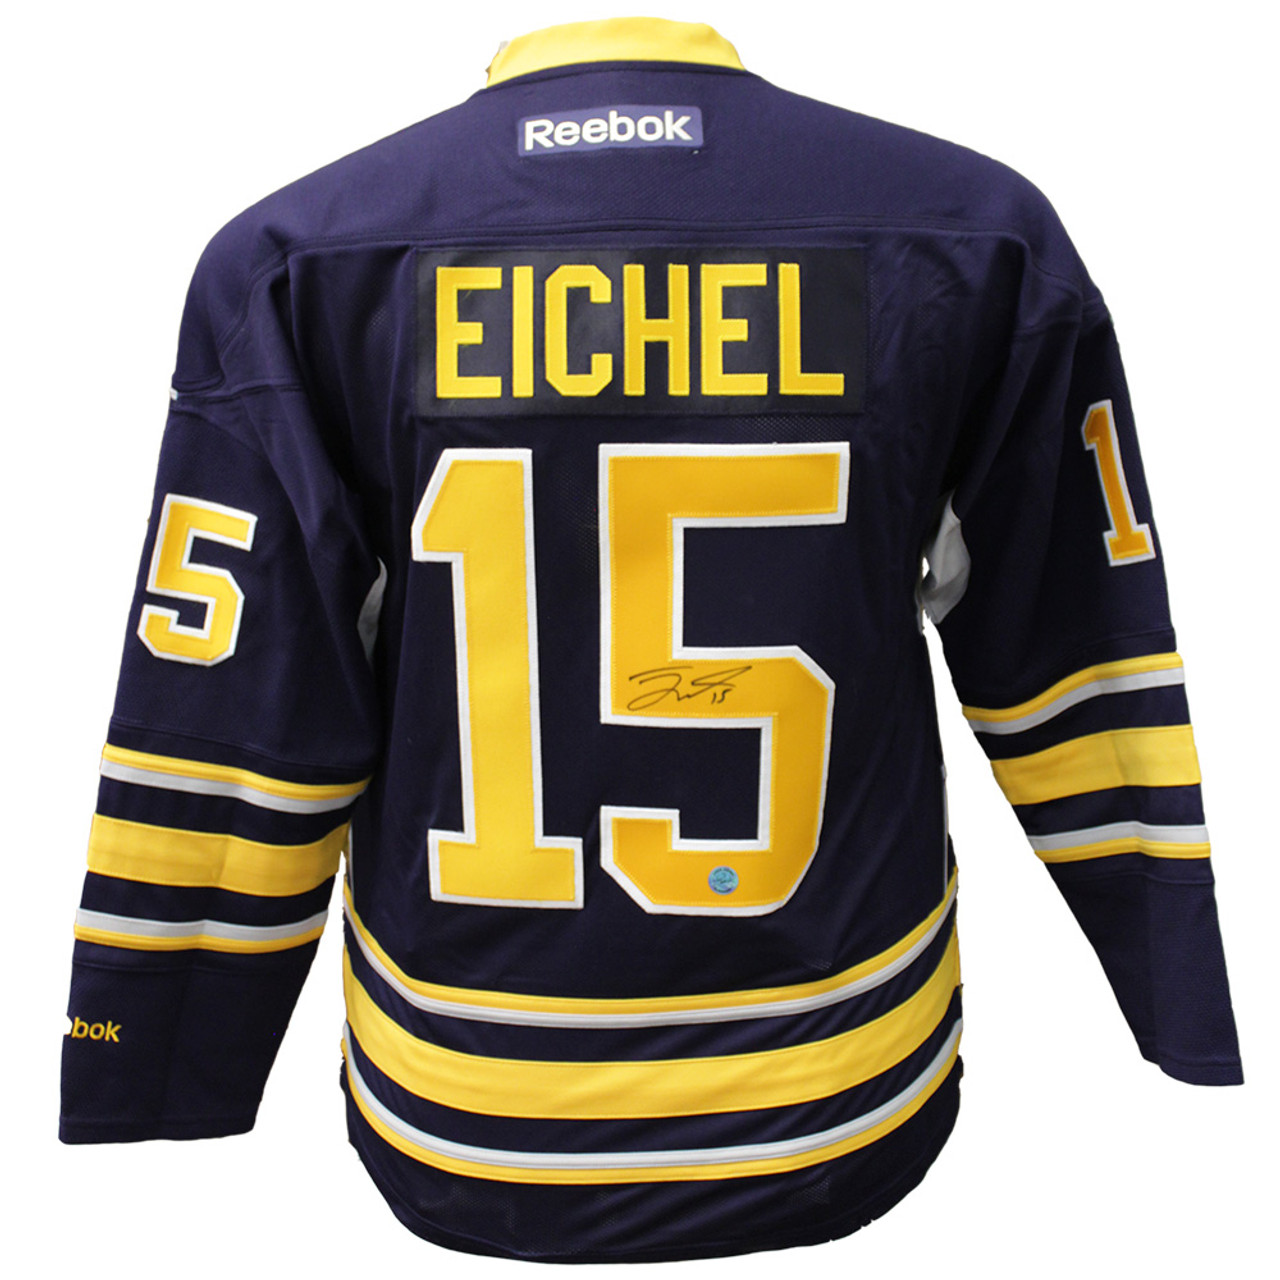 buy online 58ae6 d1107 Jack Eichel Buffalo Sabres Autographed Blue Reebok Premeir Hockey Jersey  Sports Collectibles Auth